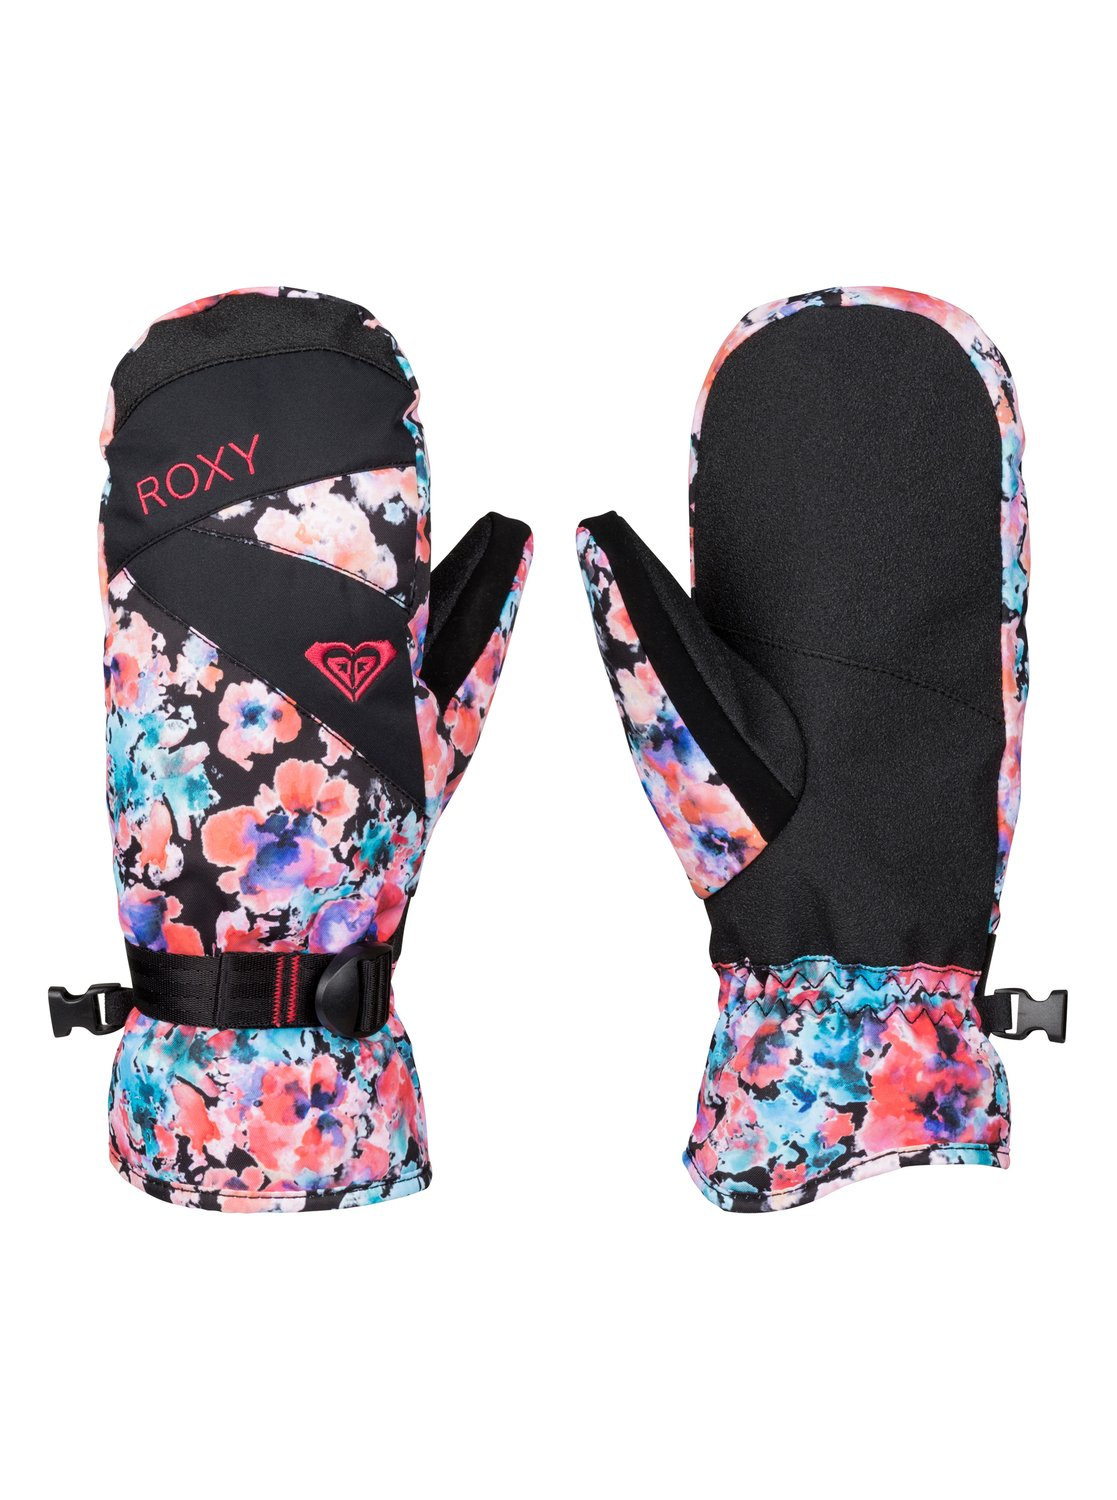 Mens Snowboard Gloves & Snow Mittens   DC Shoes